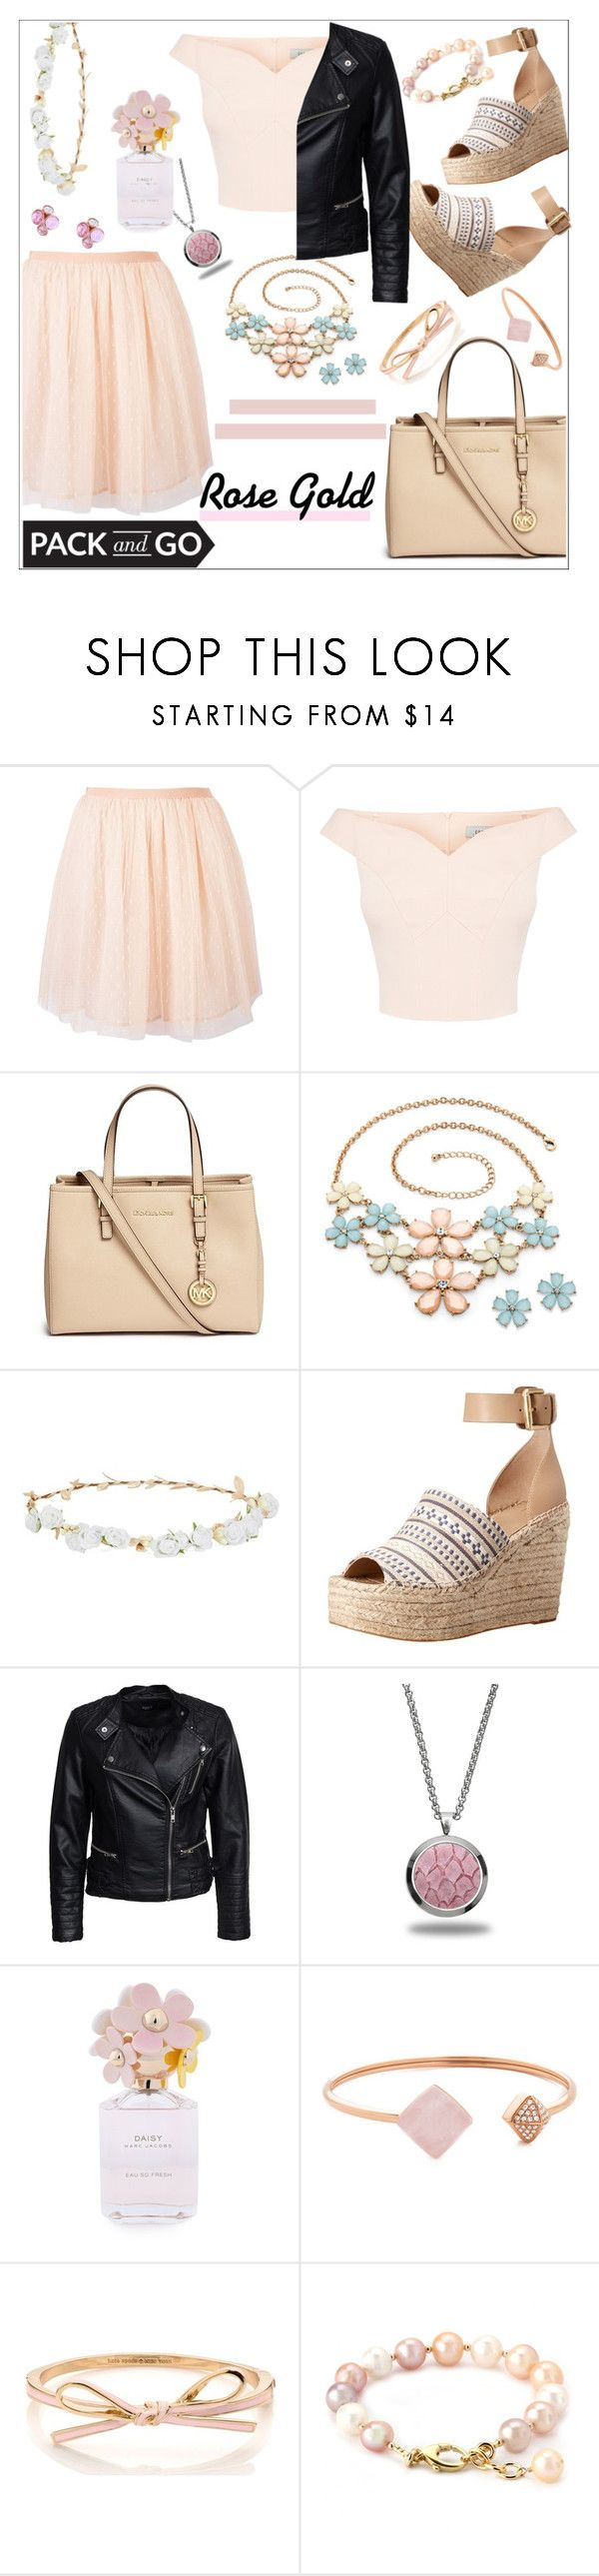 """""""Pack and Go: Labor Day-Rose Gold outfit"""" by elusiin ❤ liked on Polyvore featuring RED Valentino, Michael Kors, Design Lab, Marc Fisher LTD, Sisters Point, Marlin Birna, Marc Jacobs and Ted Baker"""